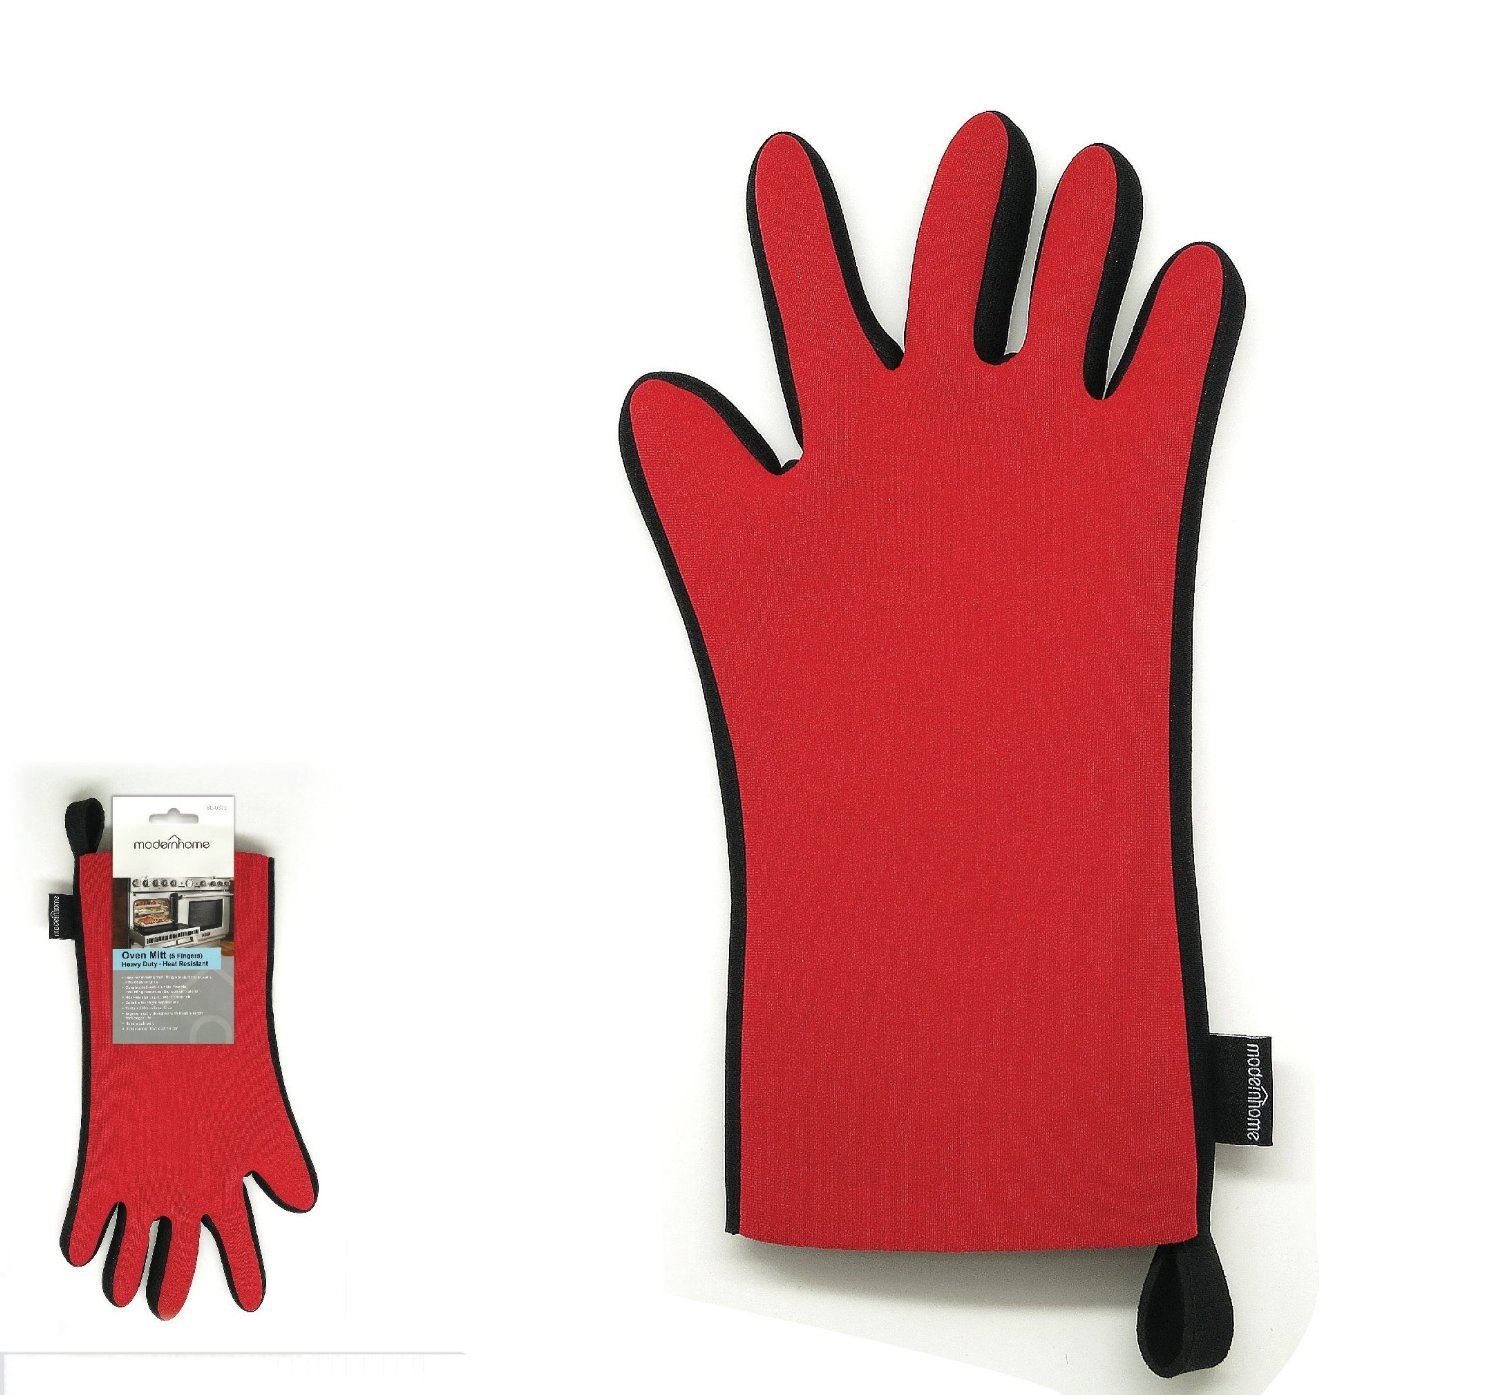 Oven Mitt 5 Fingers Heavy Duty Heat Resistant